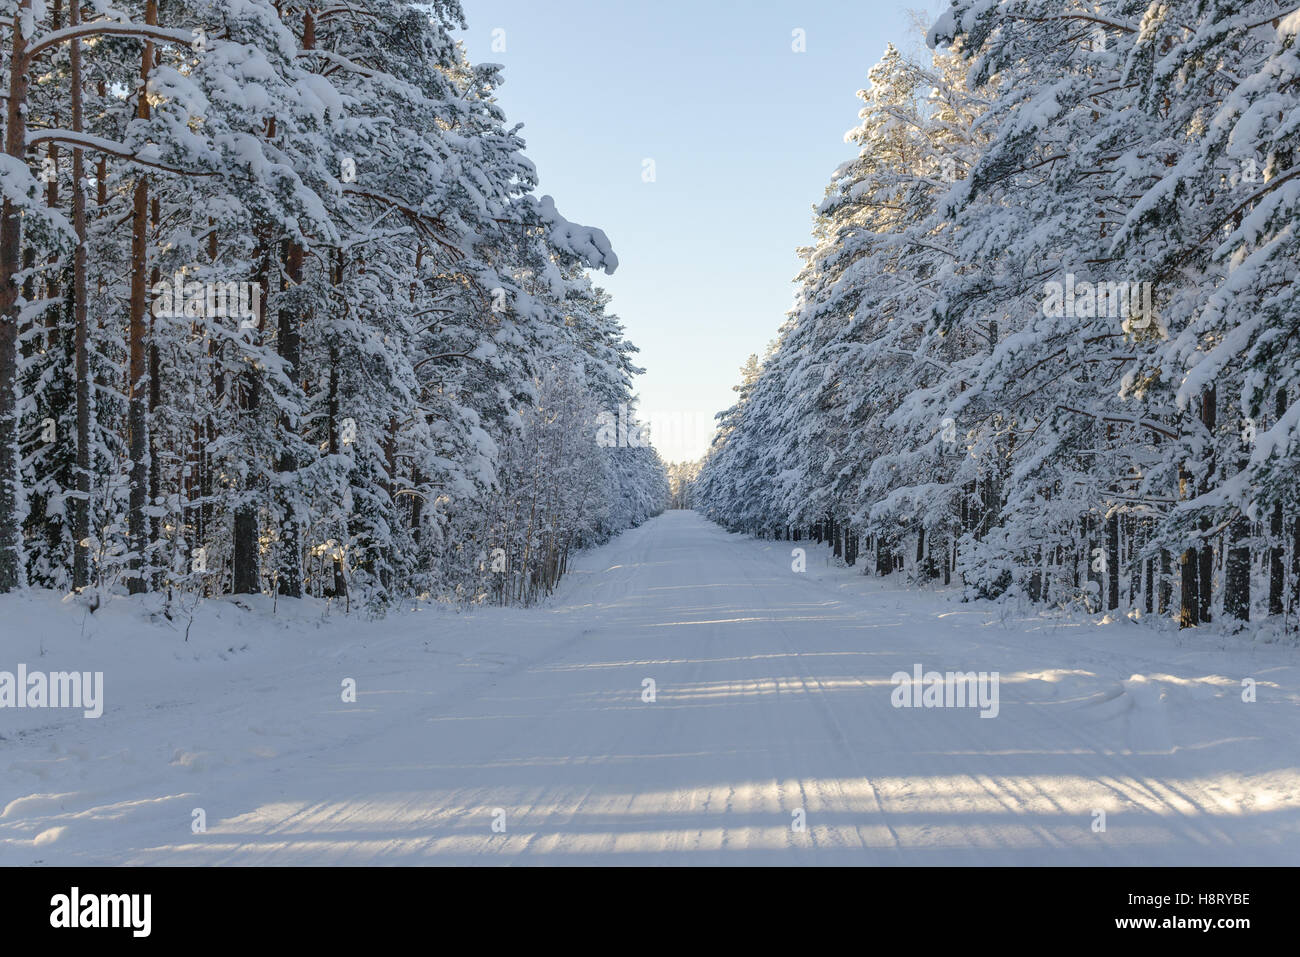 Snow covered winter road in lahemaa national park estonia